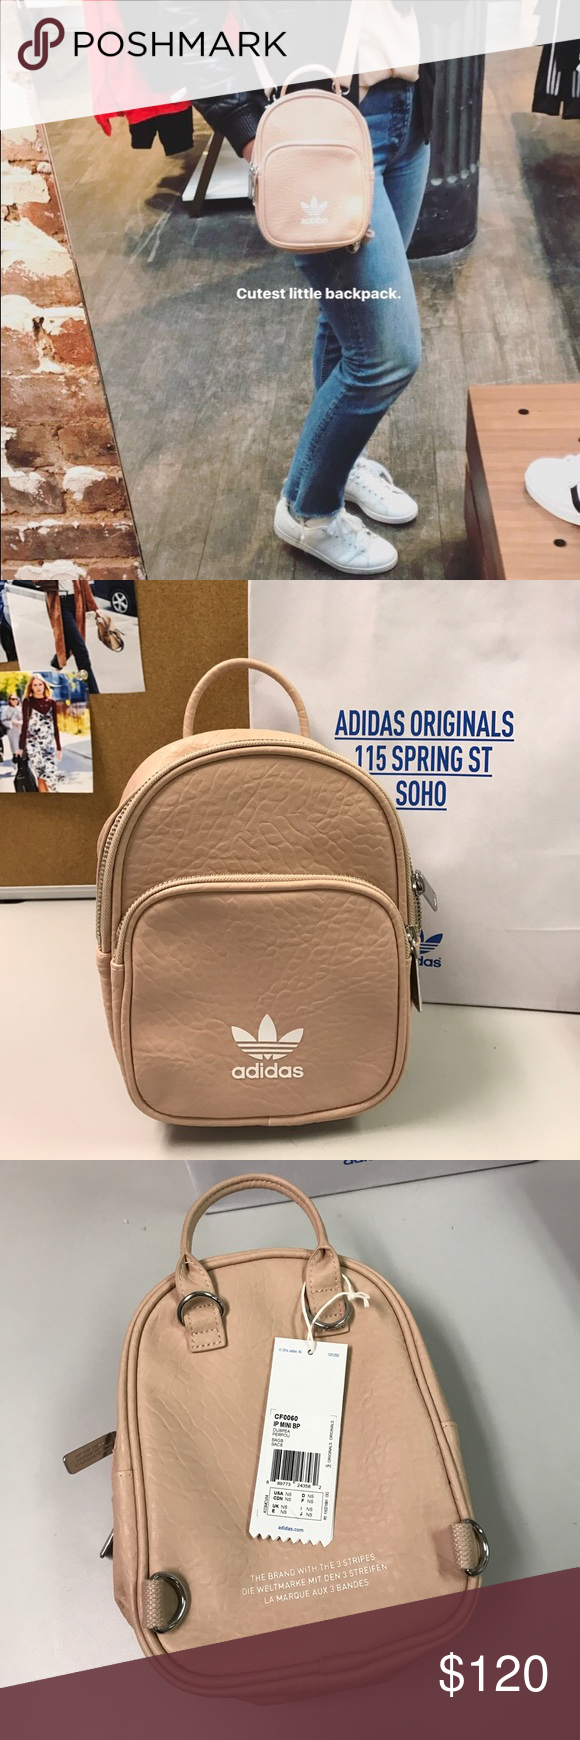 0b947f43bf1 Adidas Originals Mini Backpack Soo in love with this bag! Can be worn as  backpack or cross body. Super cute and on trend. Sold out everywhere!